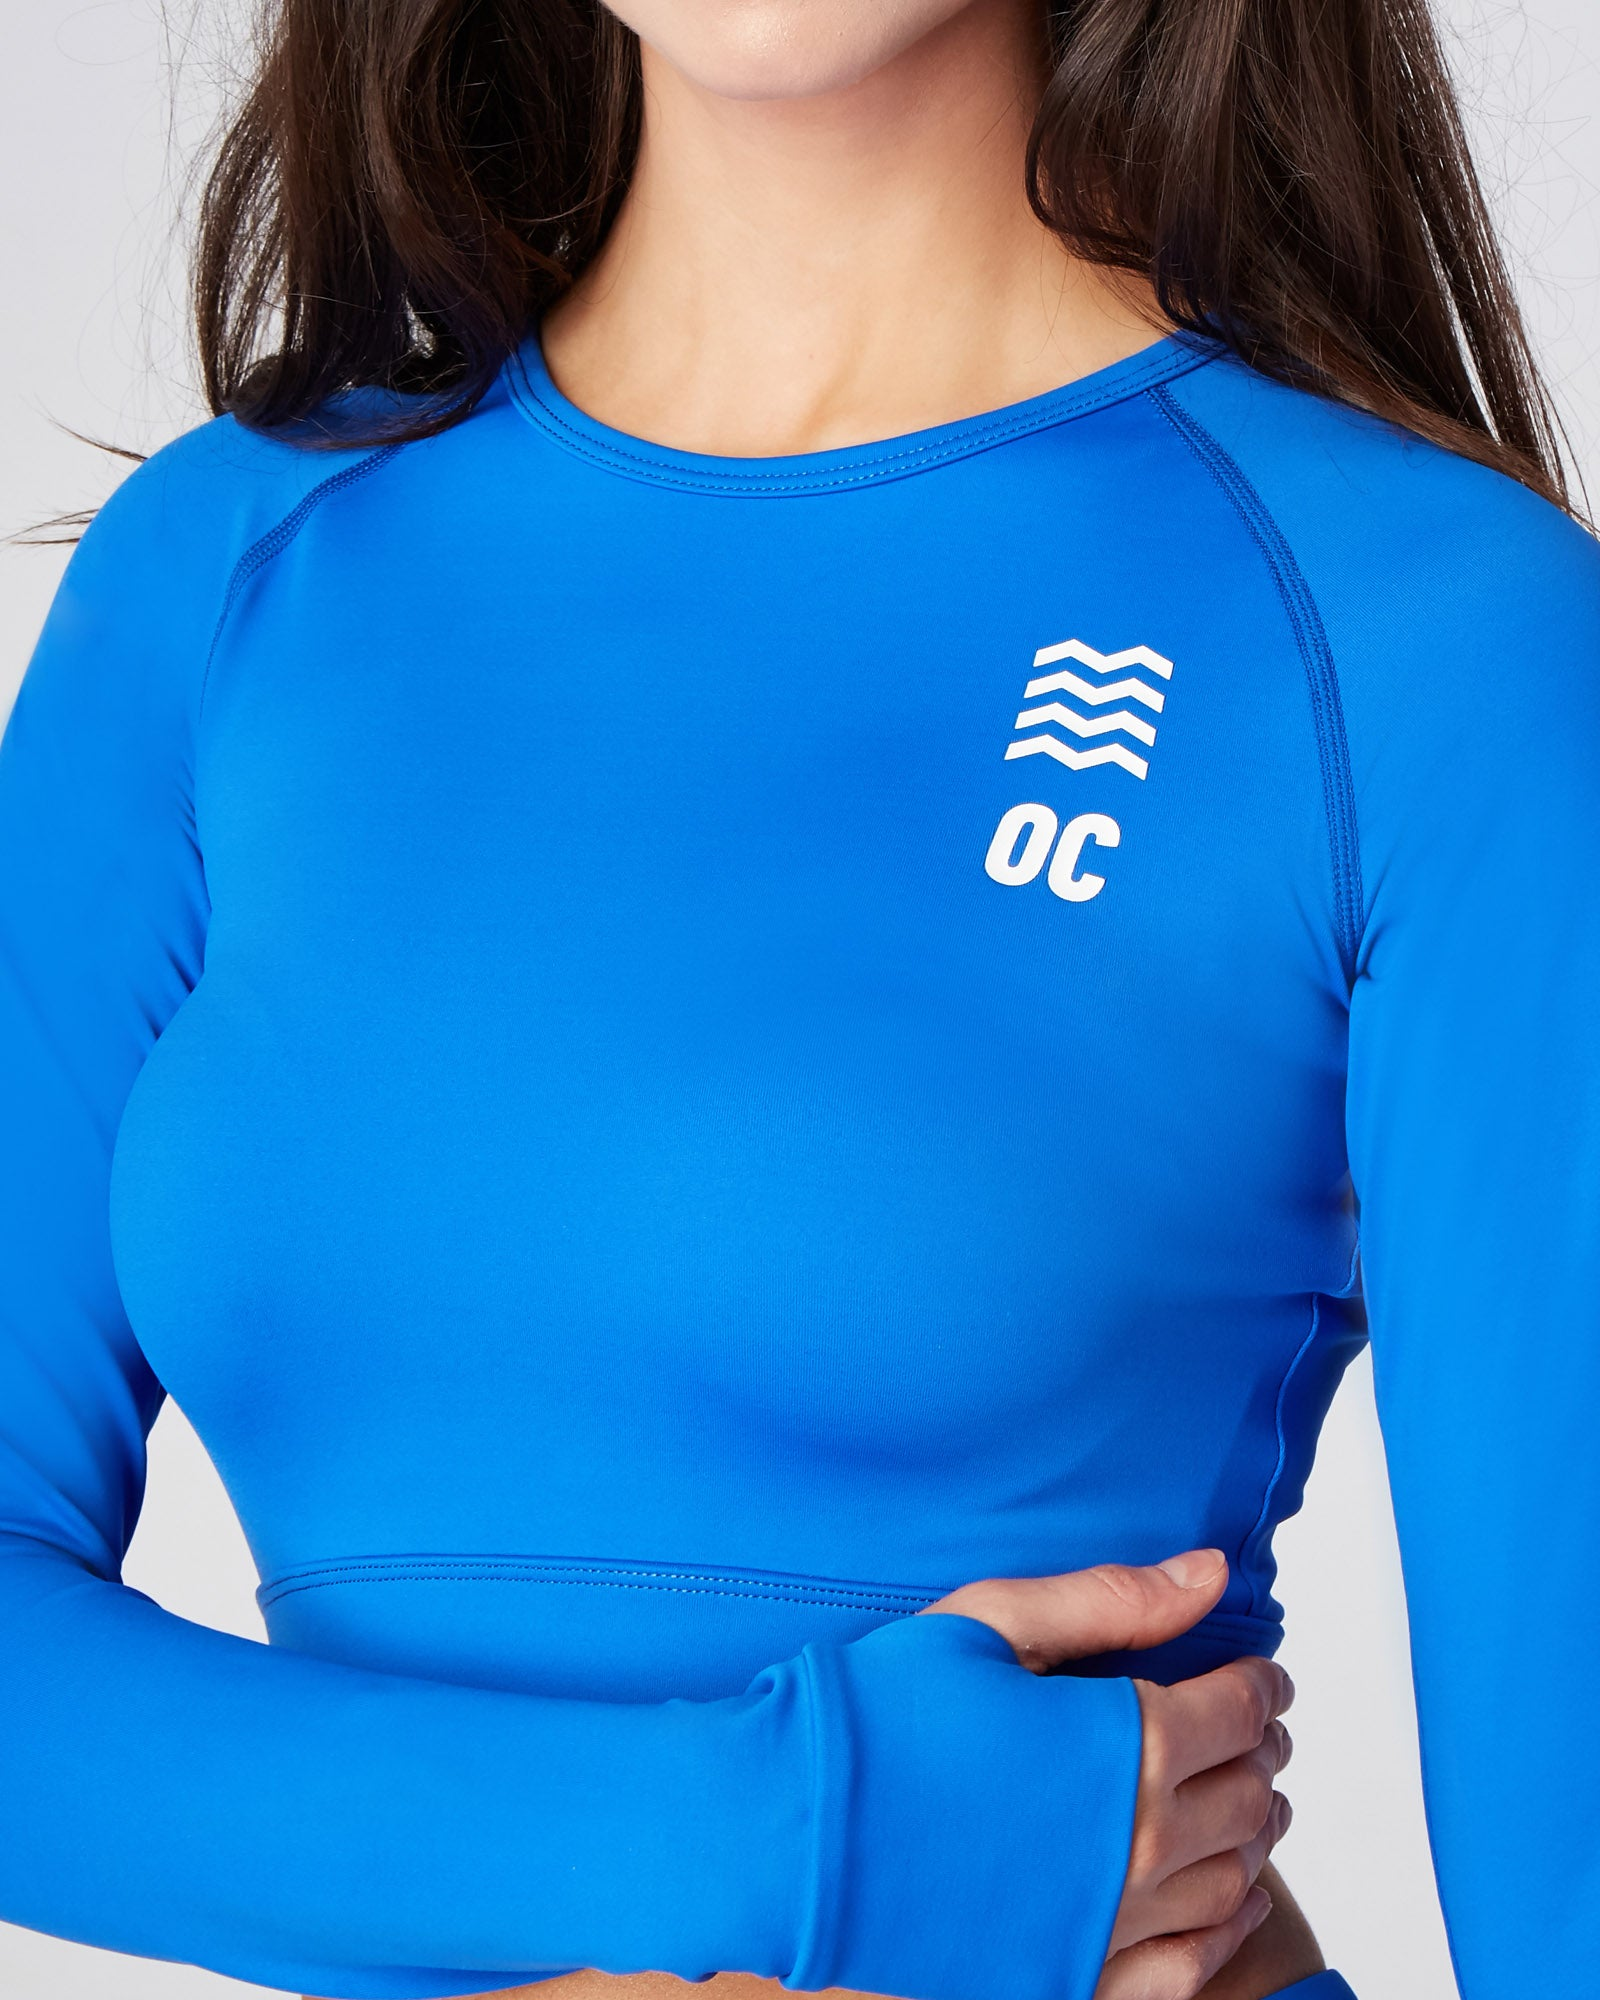 OC Eco Long Sleeve Blue Cropped Top